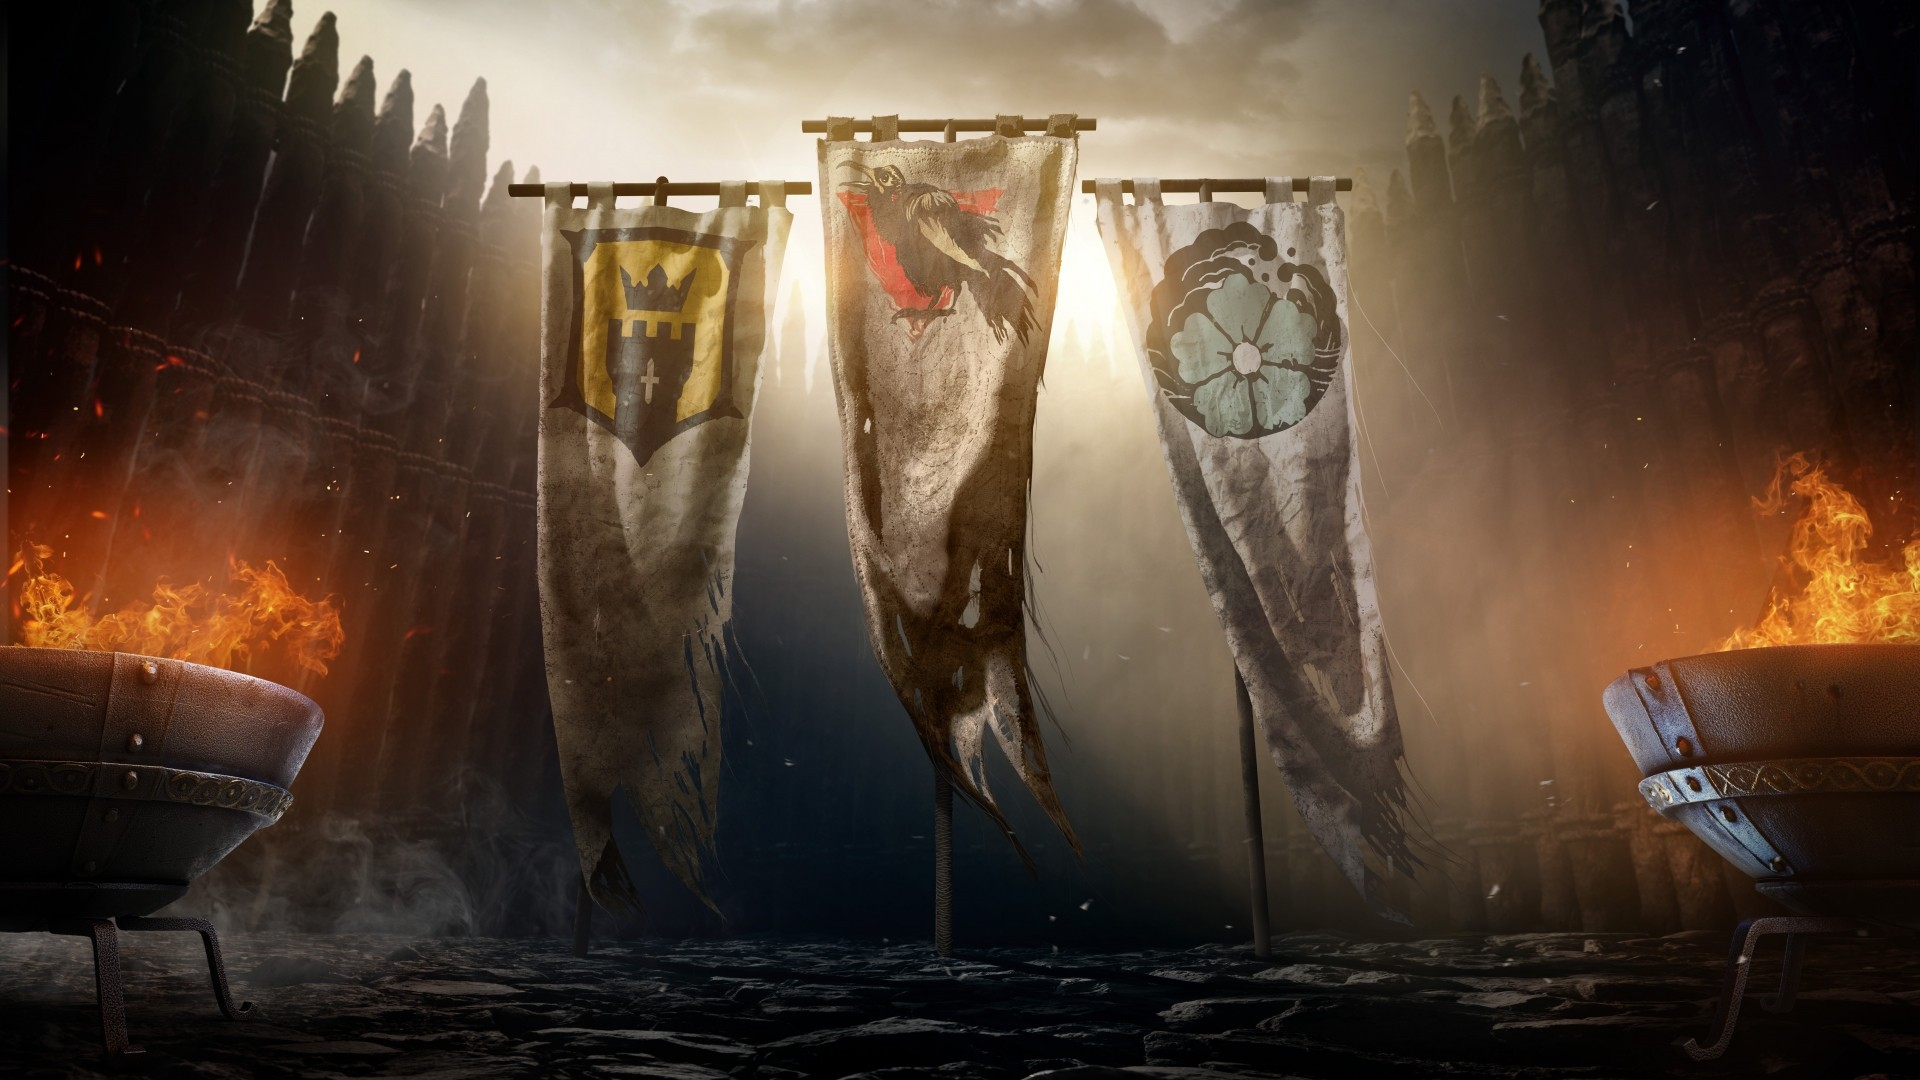 For Honor wallpaper photo hd